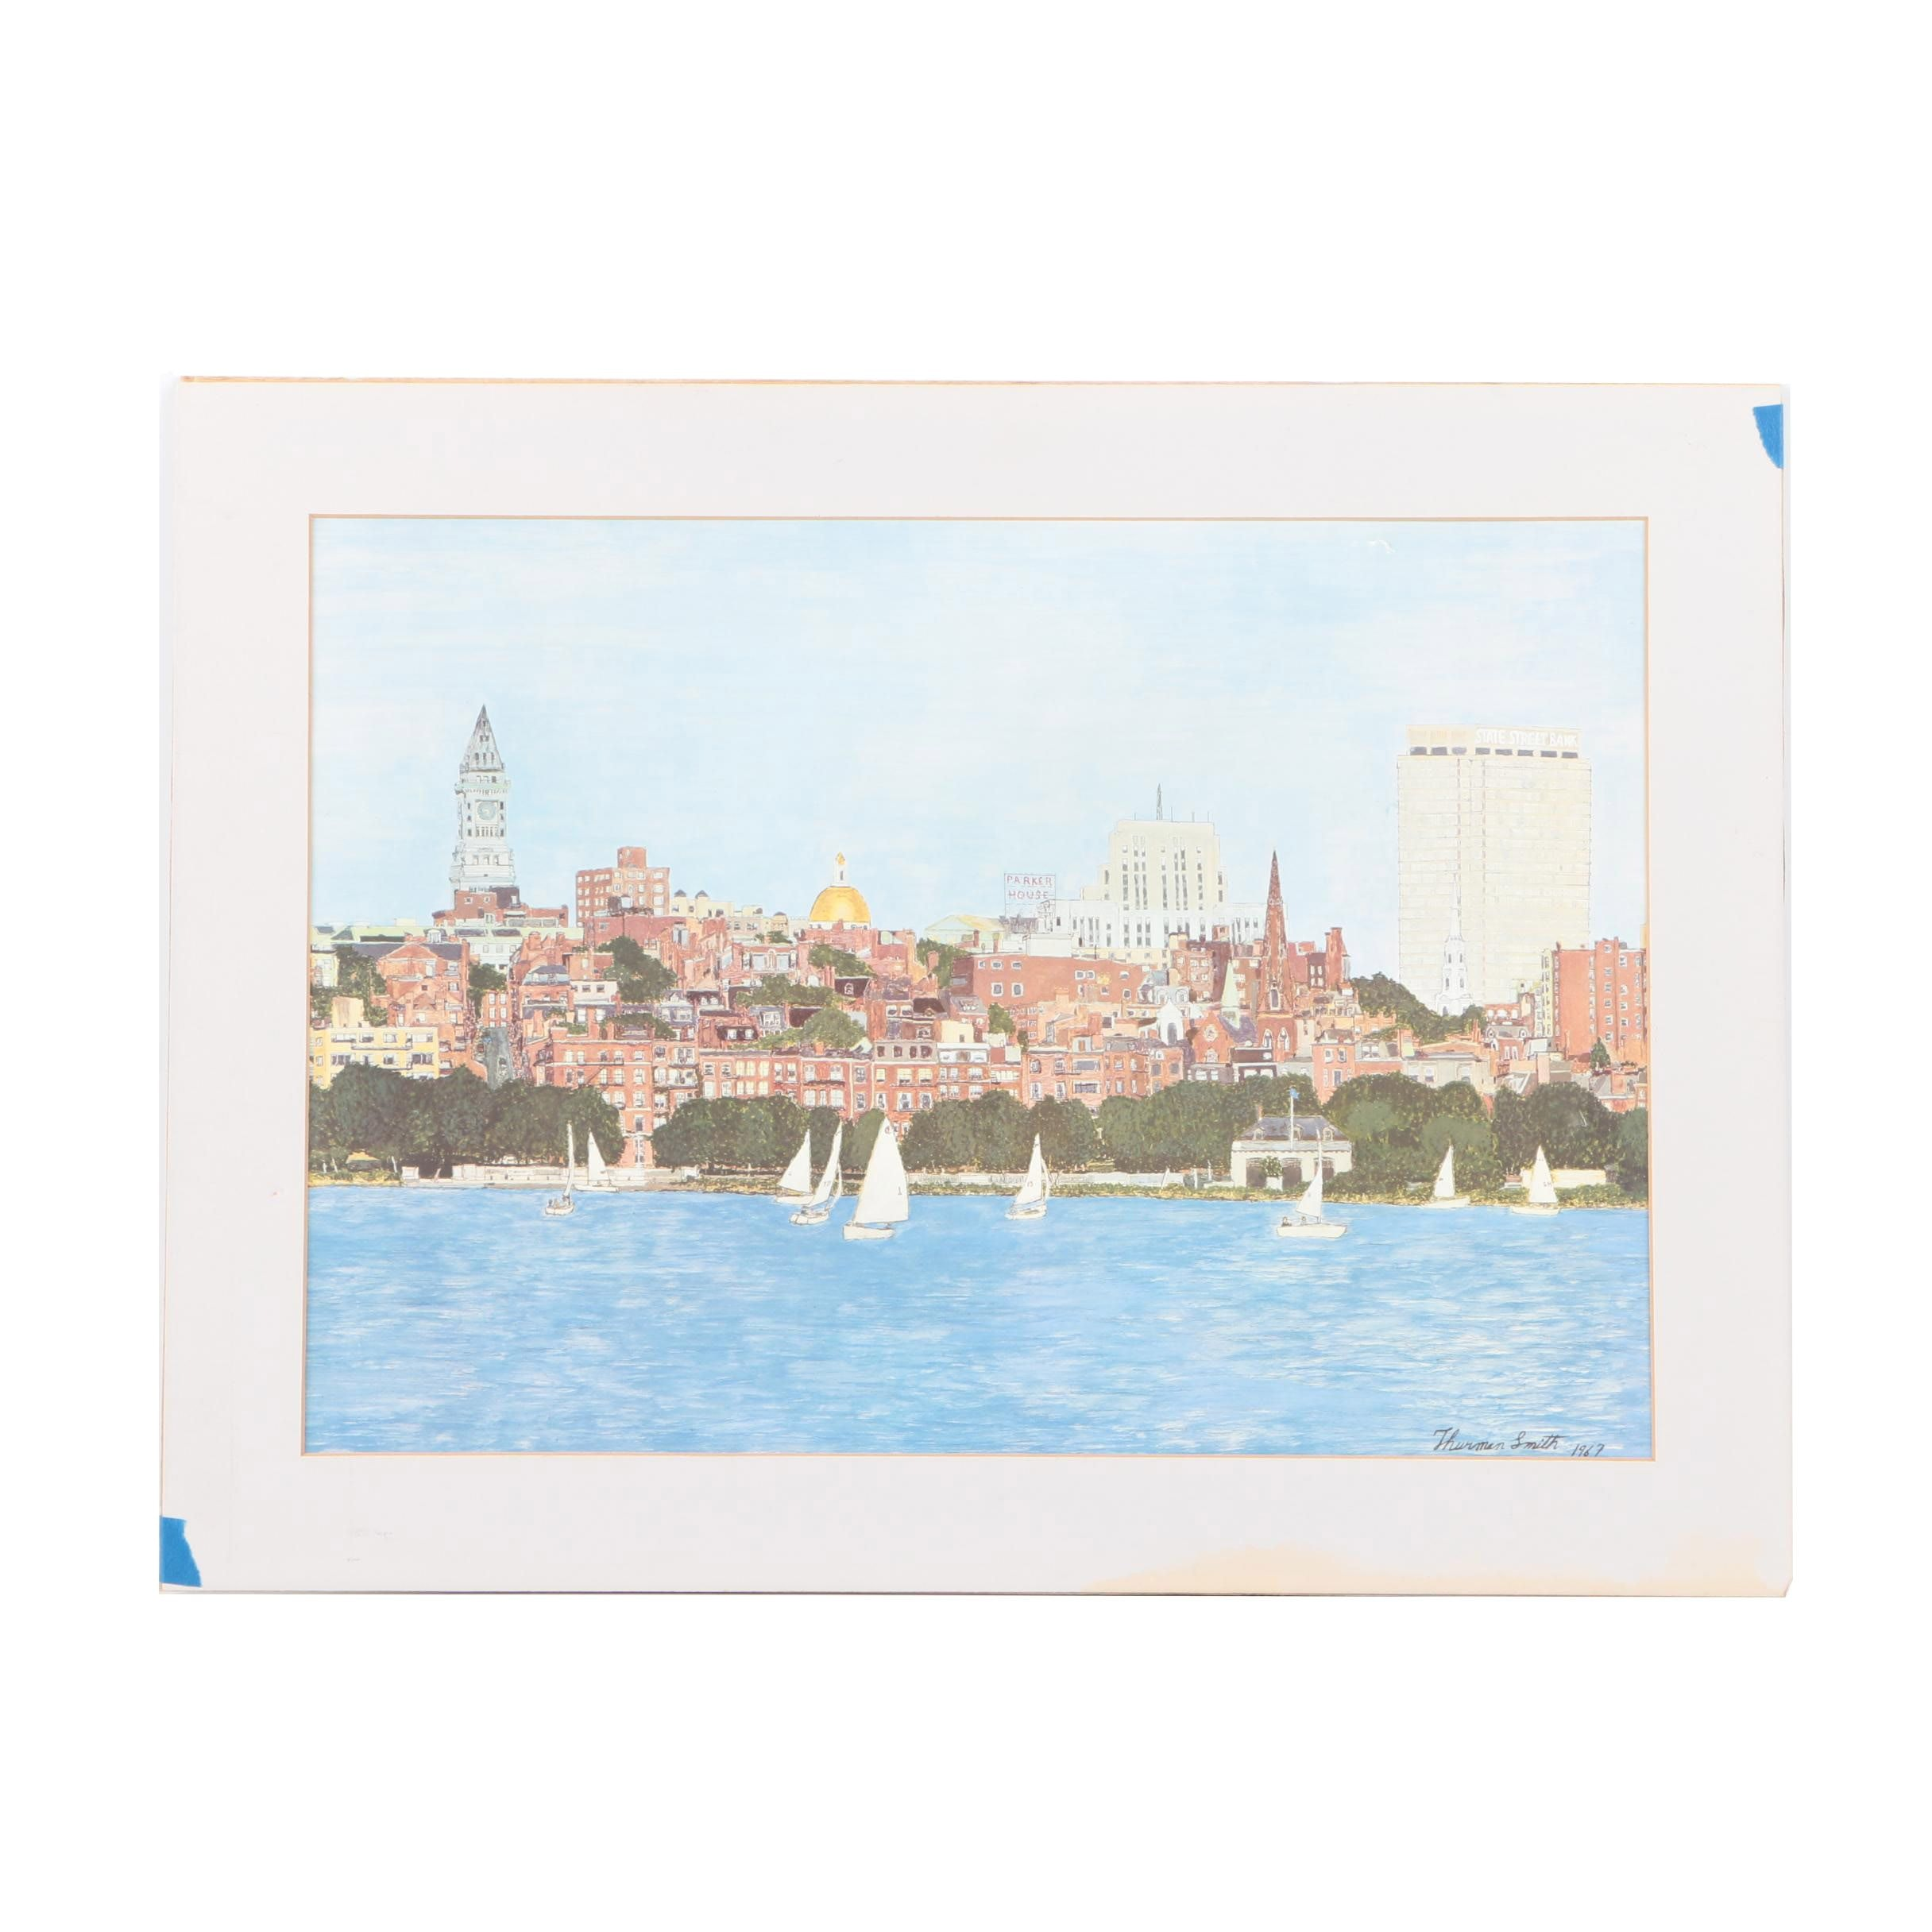 Thurman Smith Offset Lithograph of City Skyline